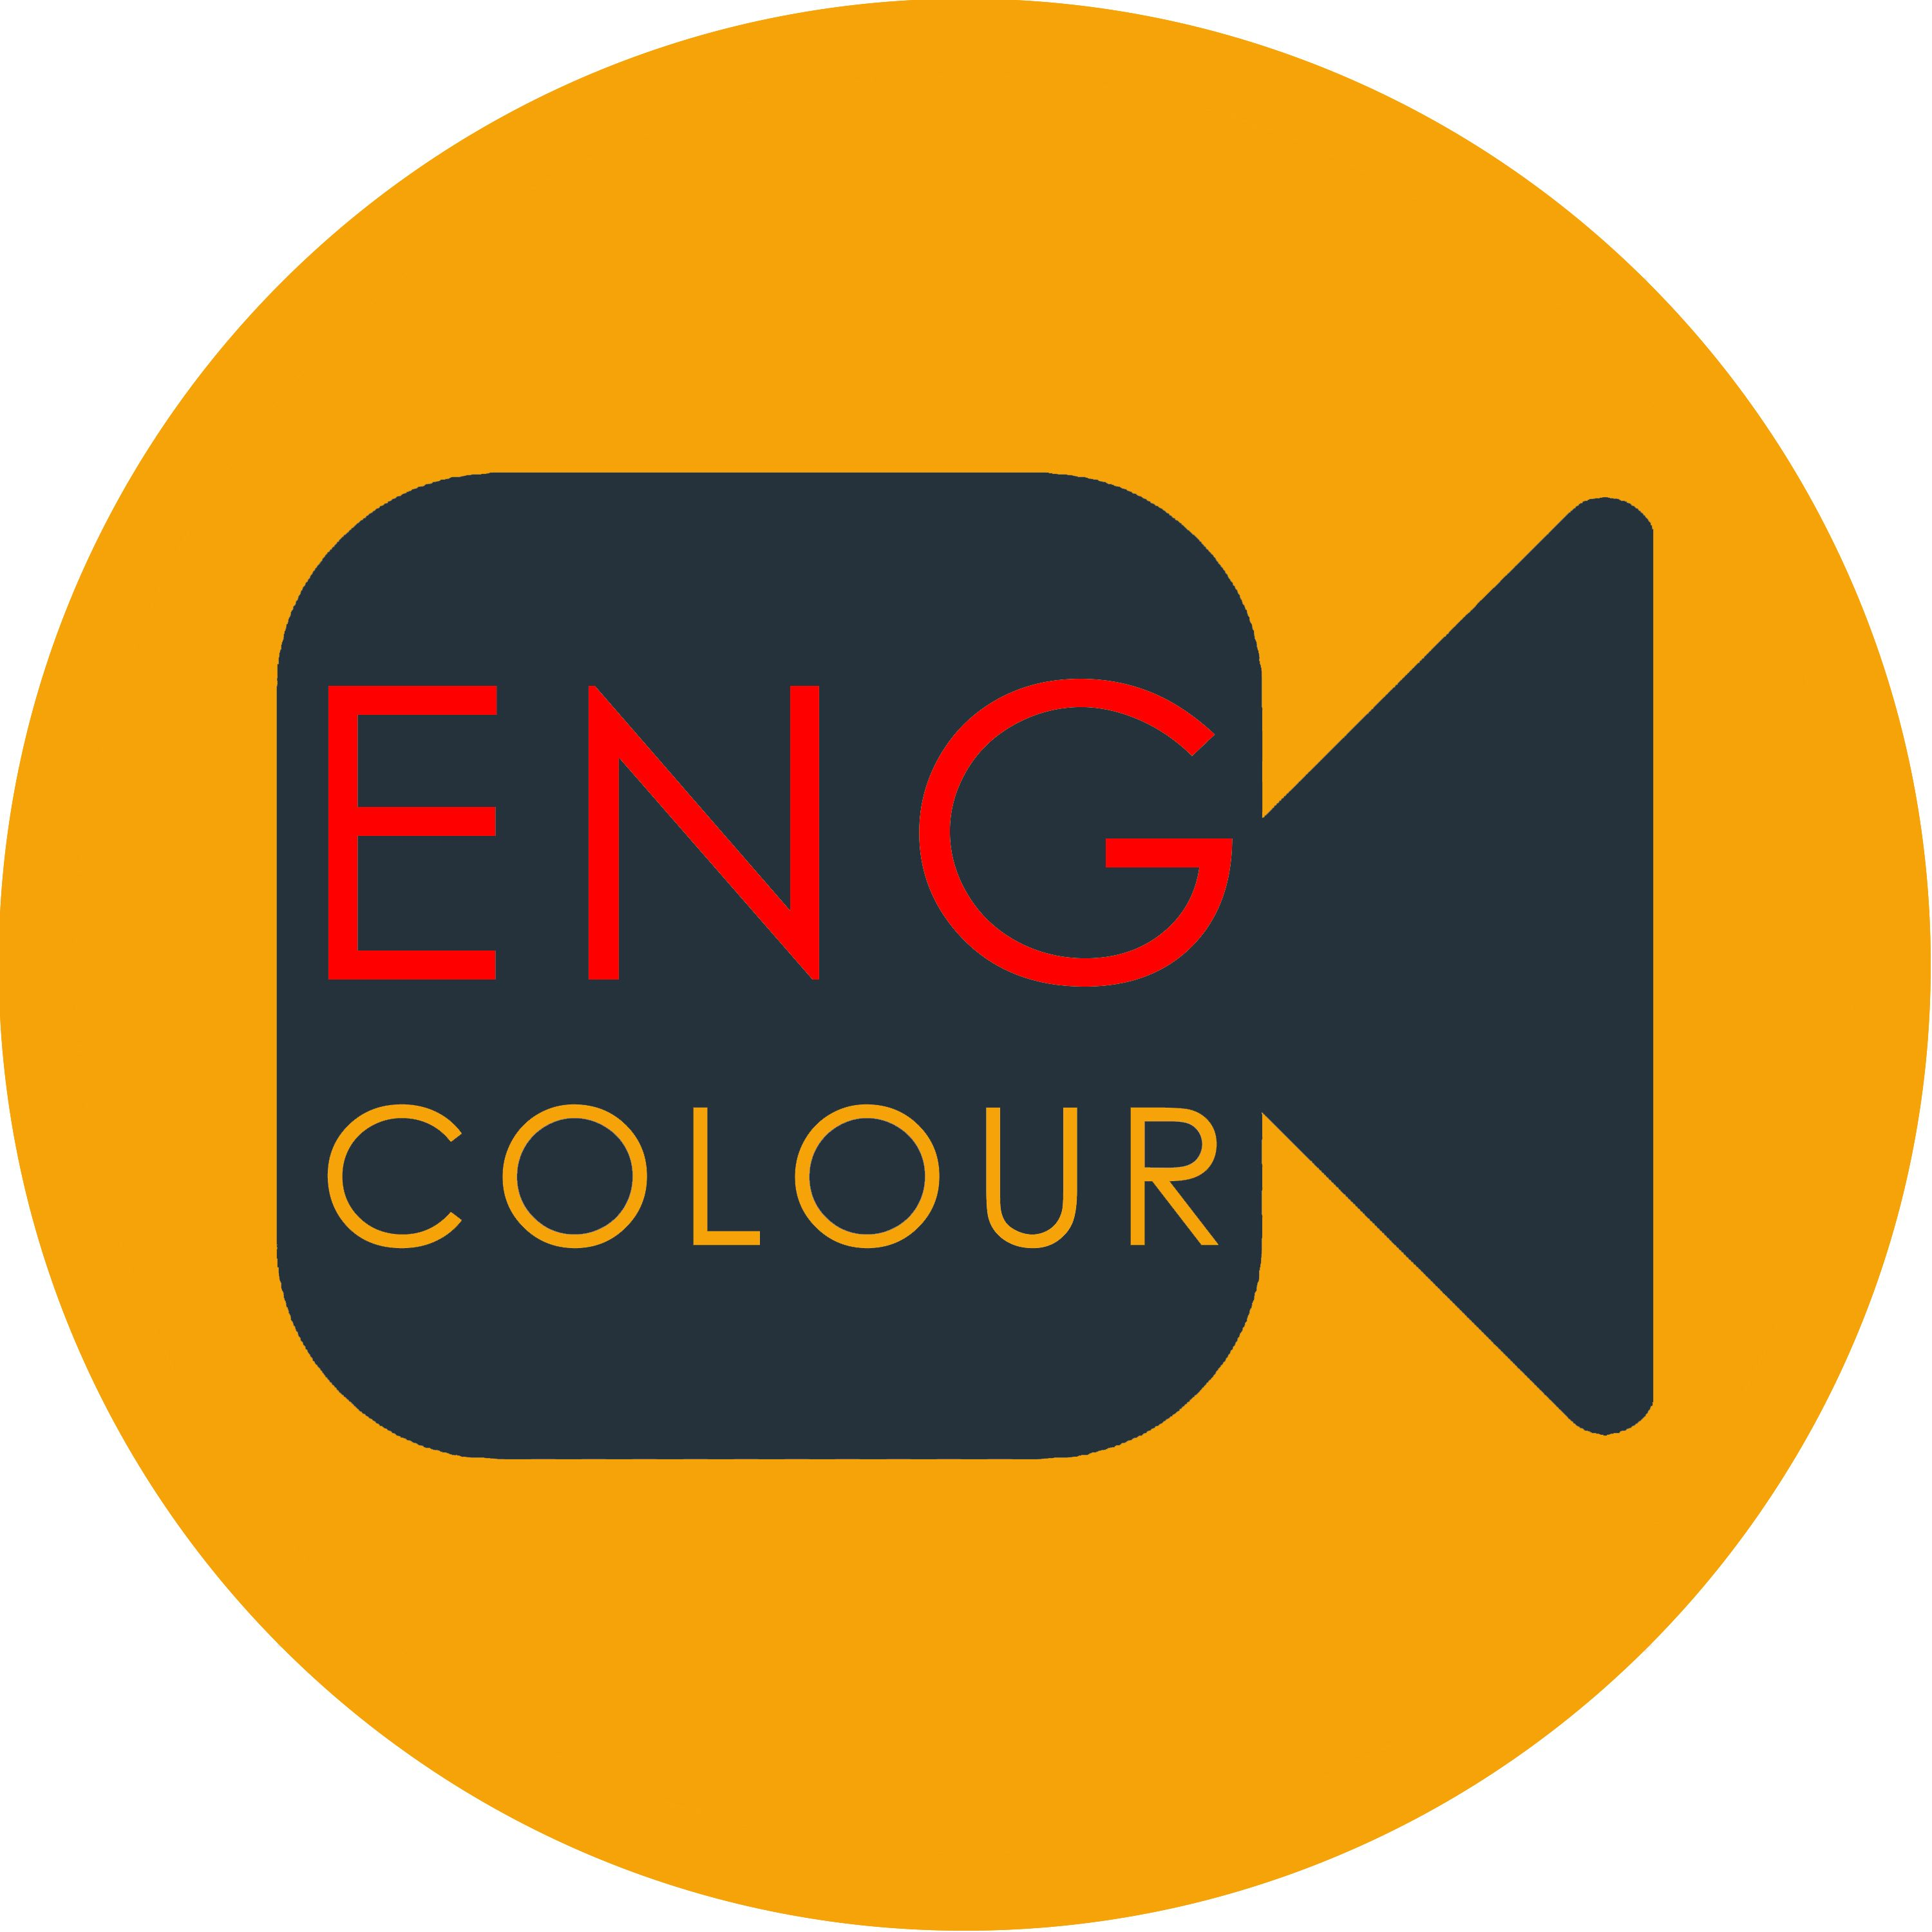 ENG Colour